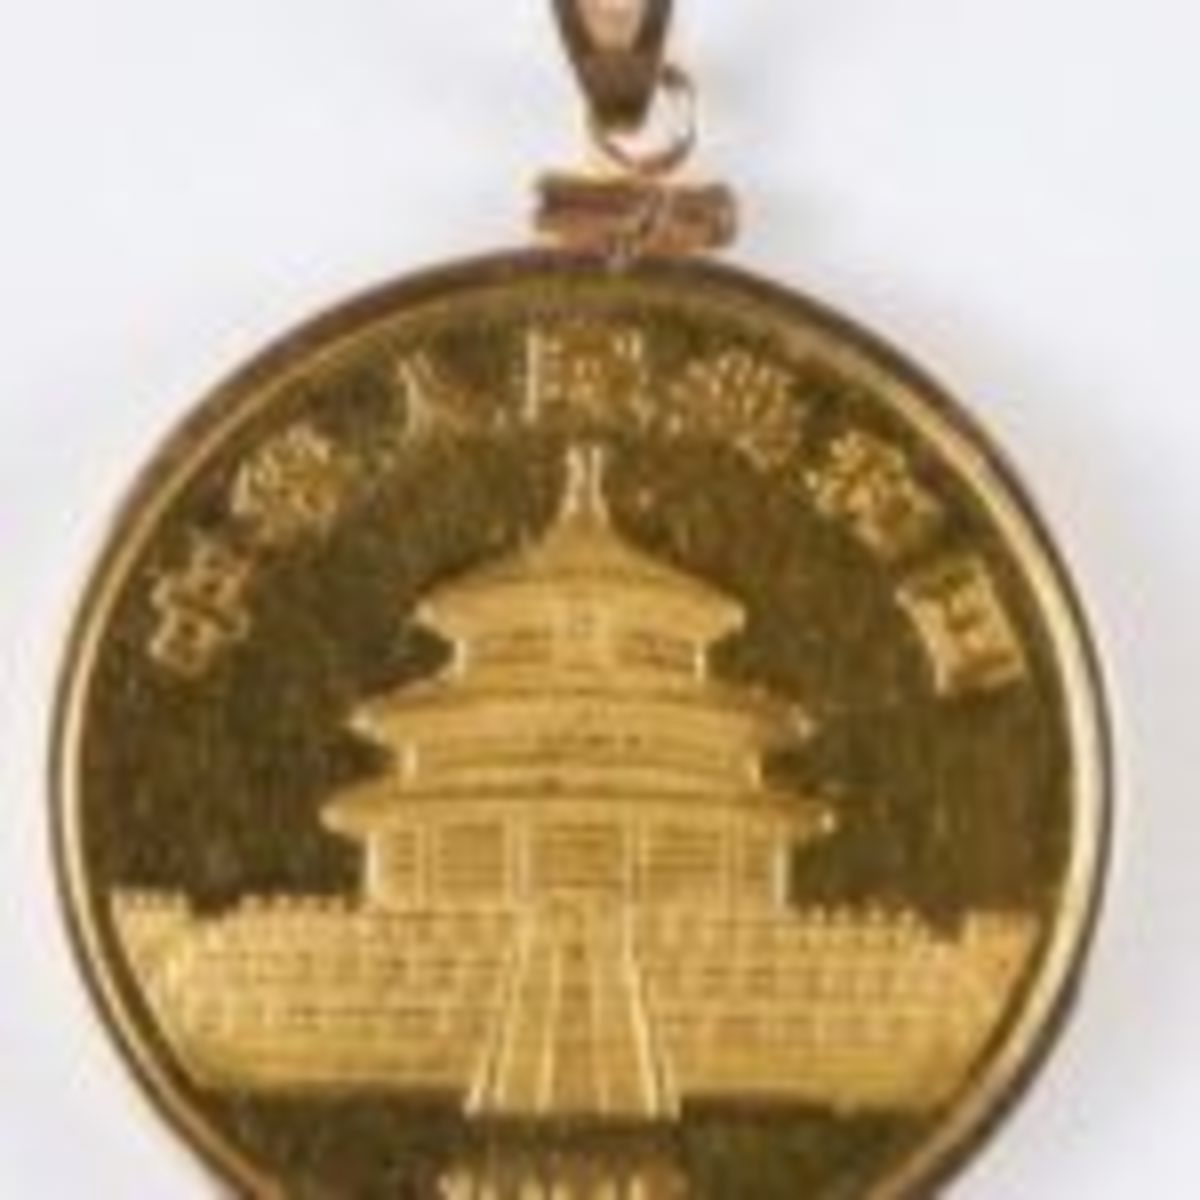 Chinese 1 ozt. fine gold coin. ($800 - $1000)